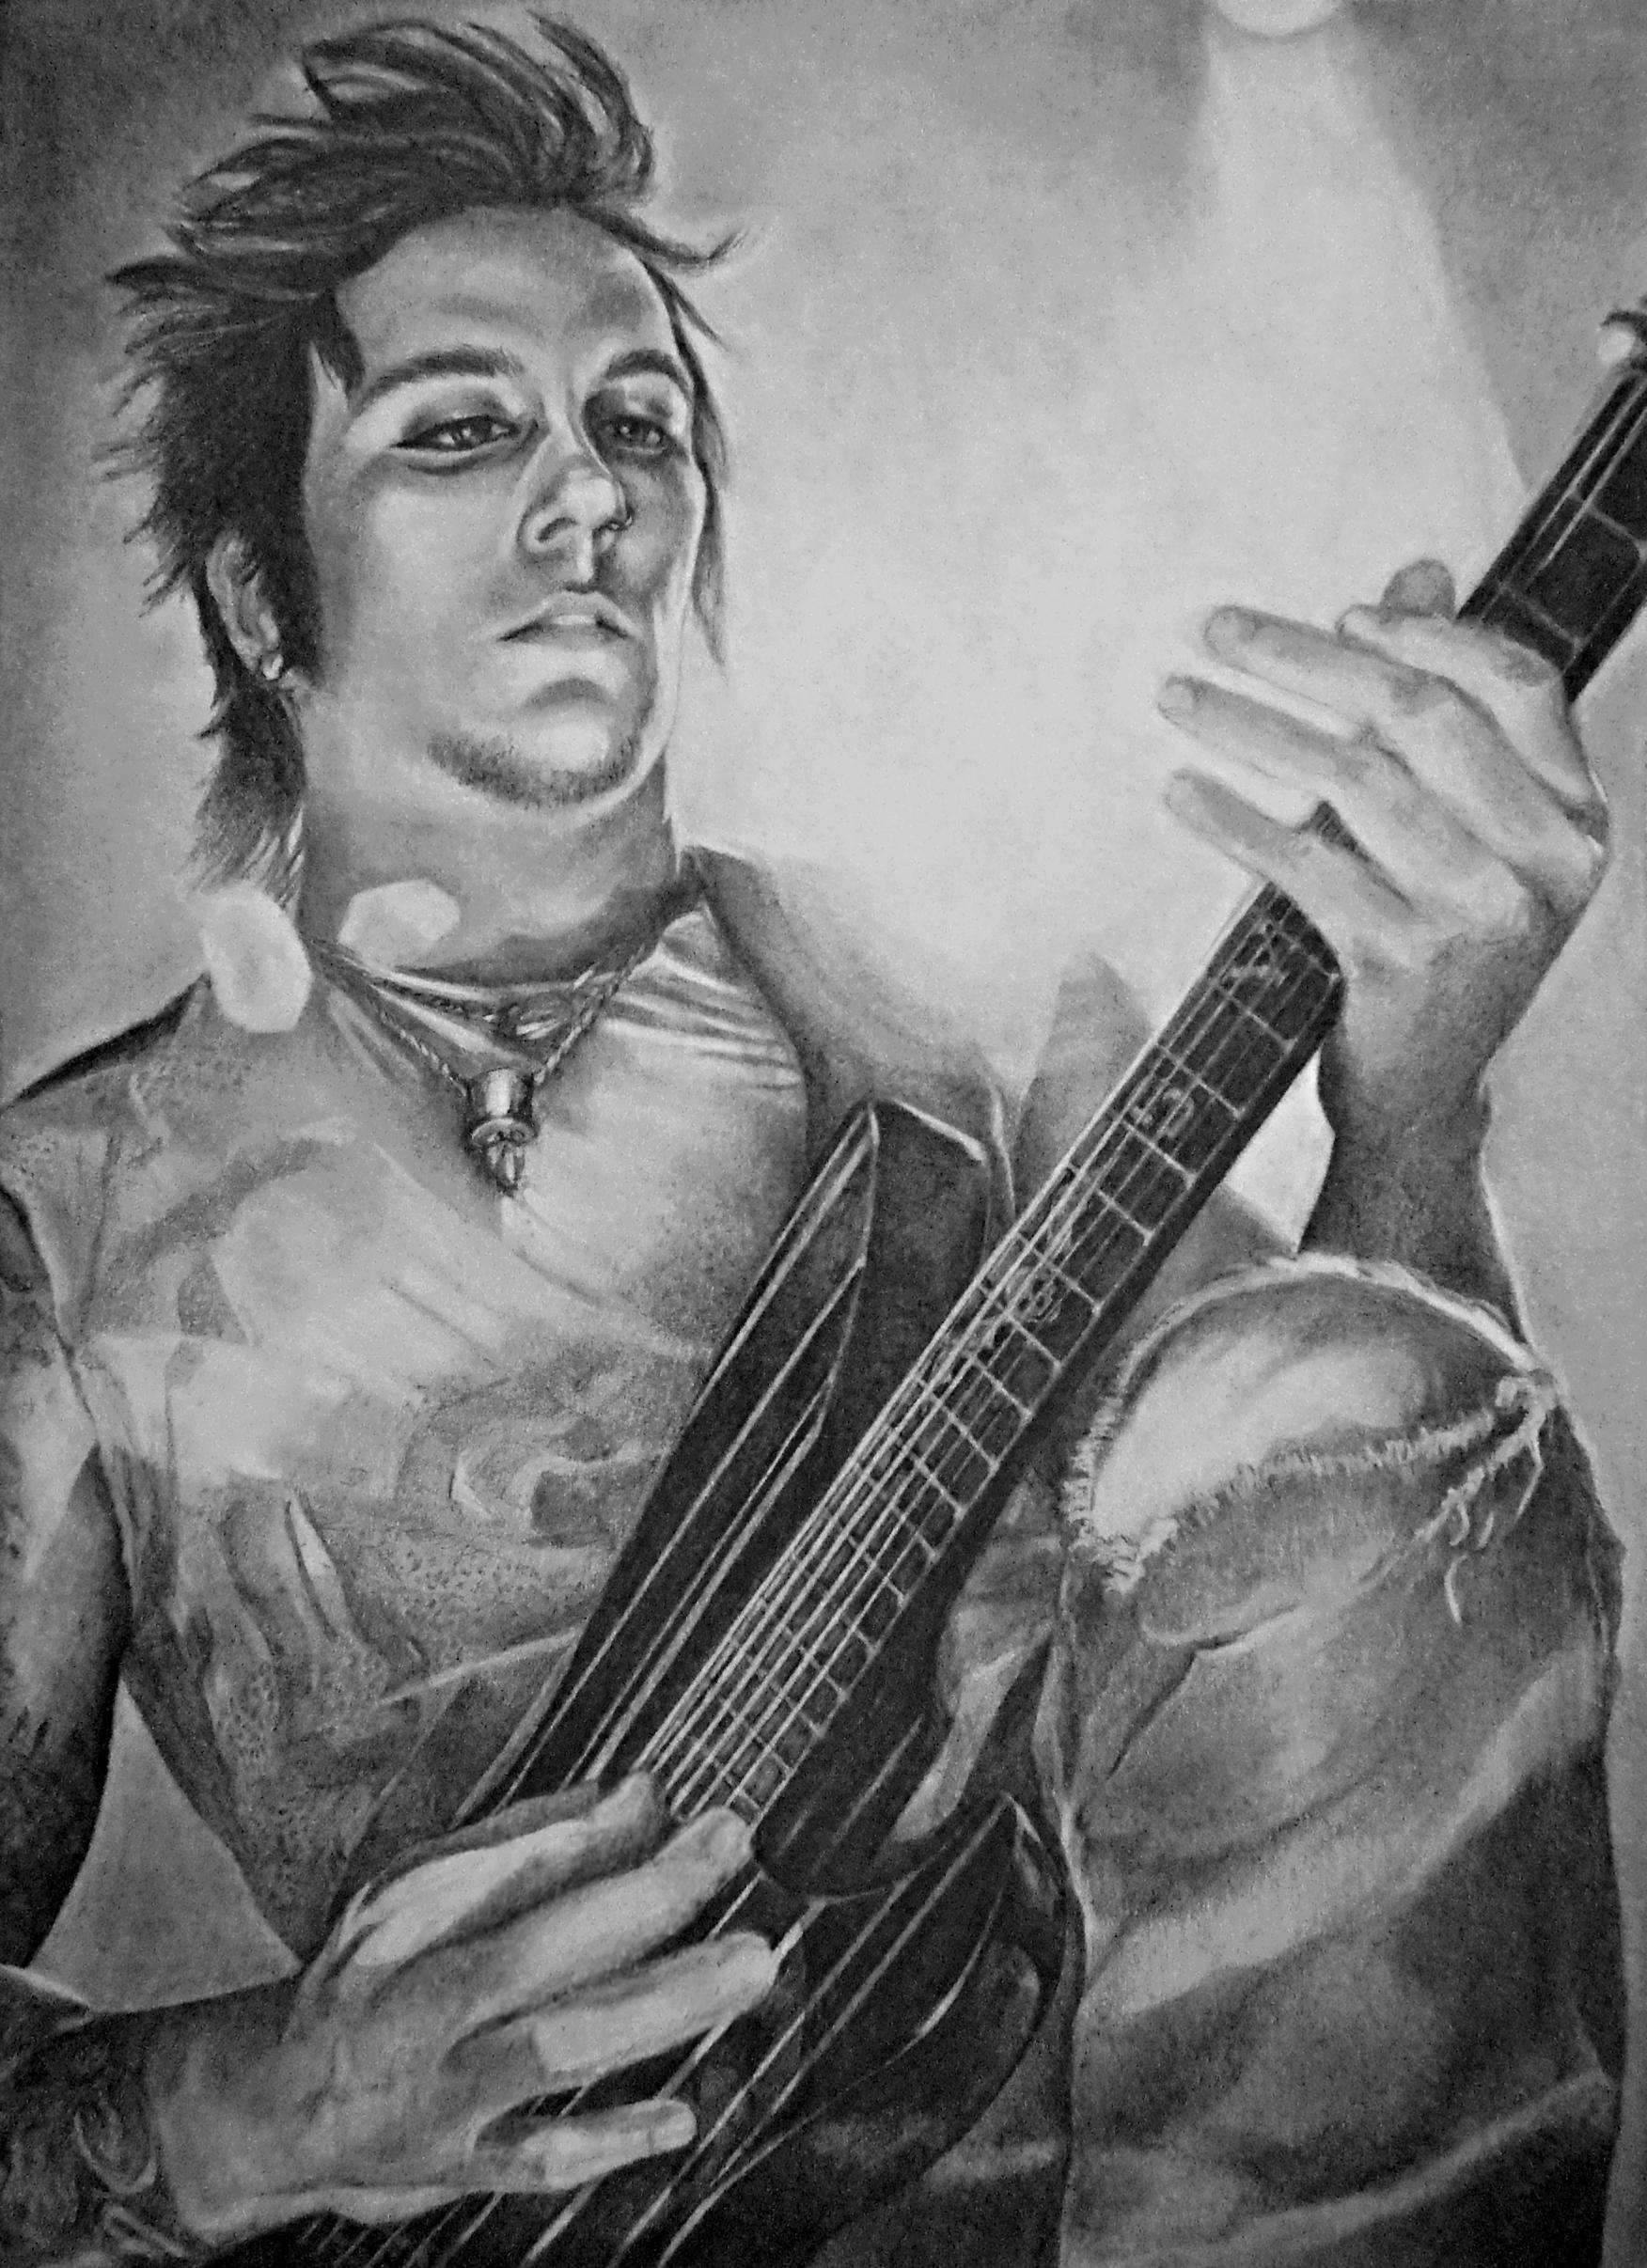 Synyster Gates By Lisasuriani On Deviantart